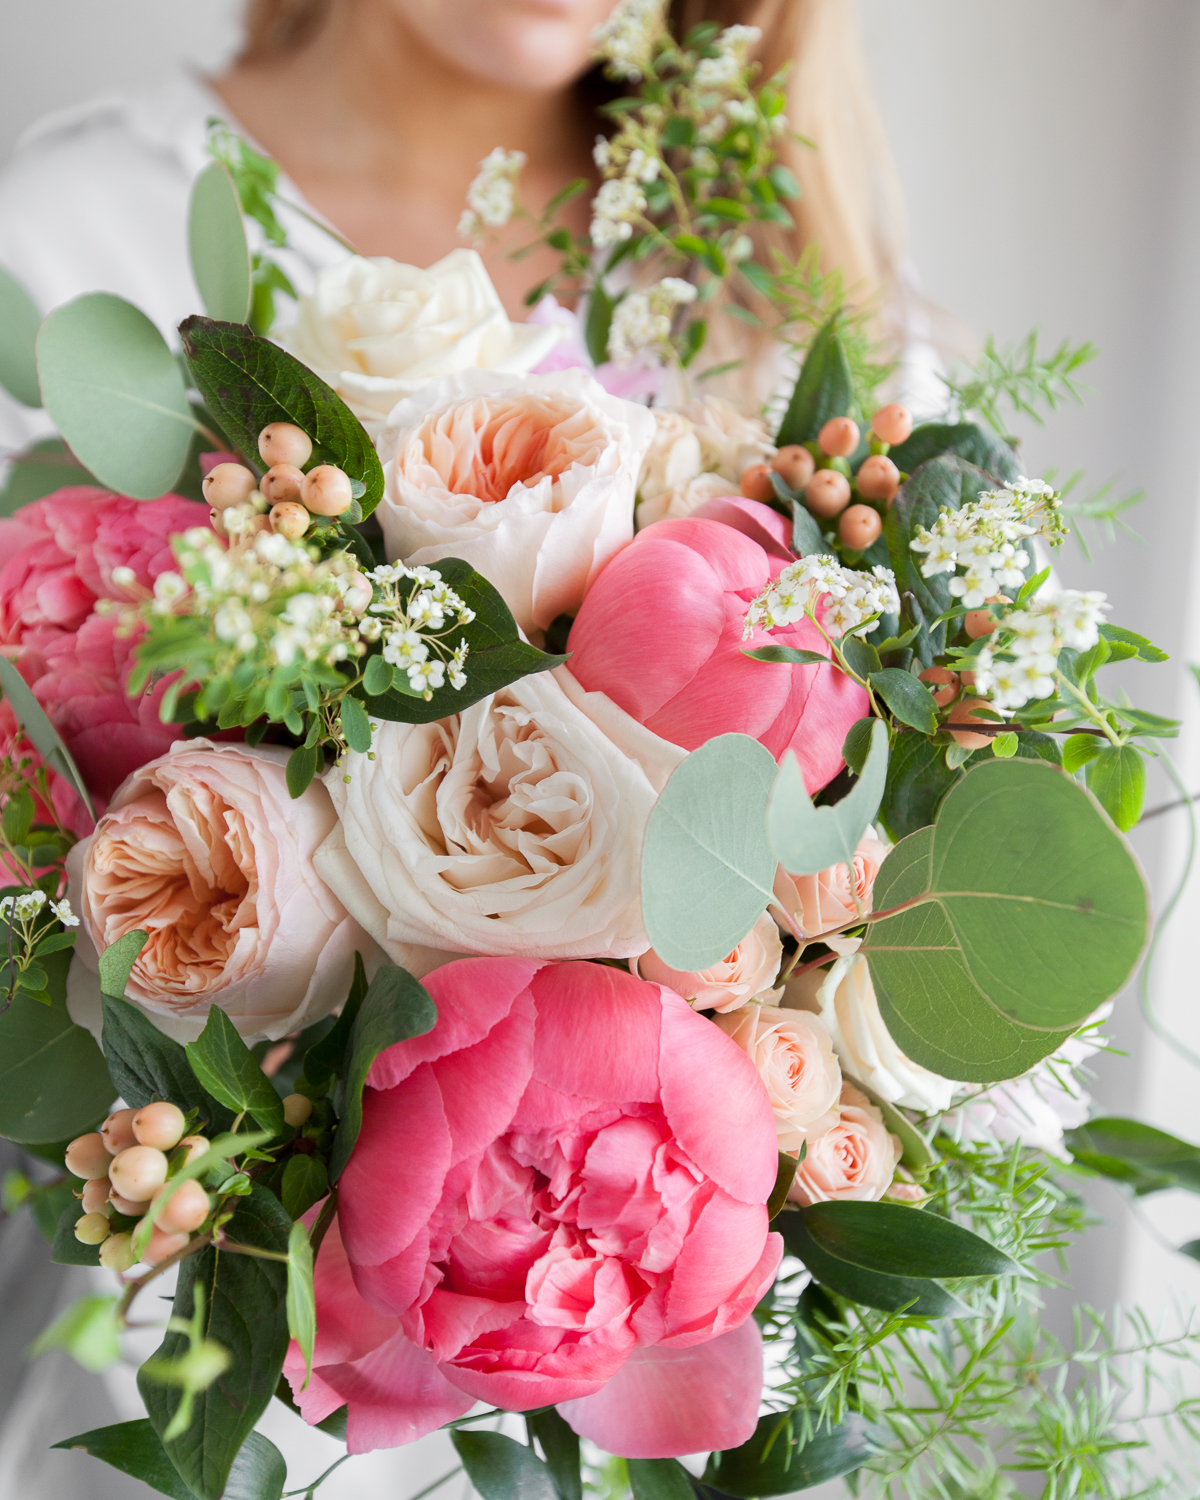 Wedding Flowers Online.Made With Love Amborella Floral Calgary Order Your Florals Online